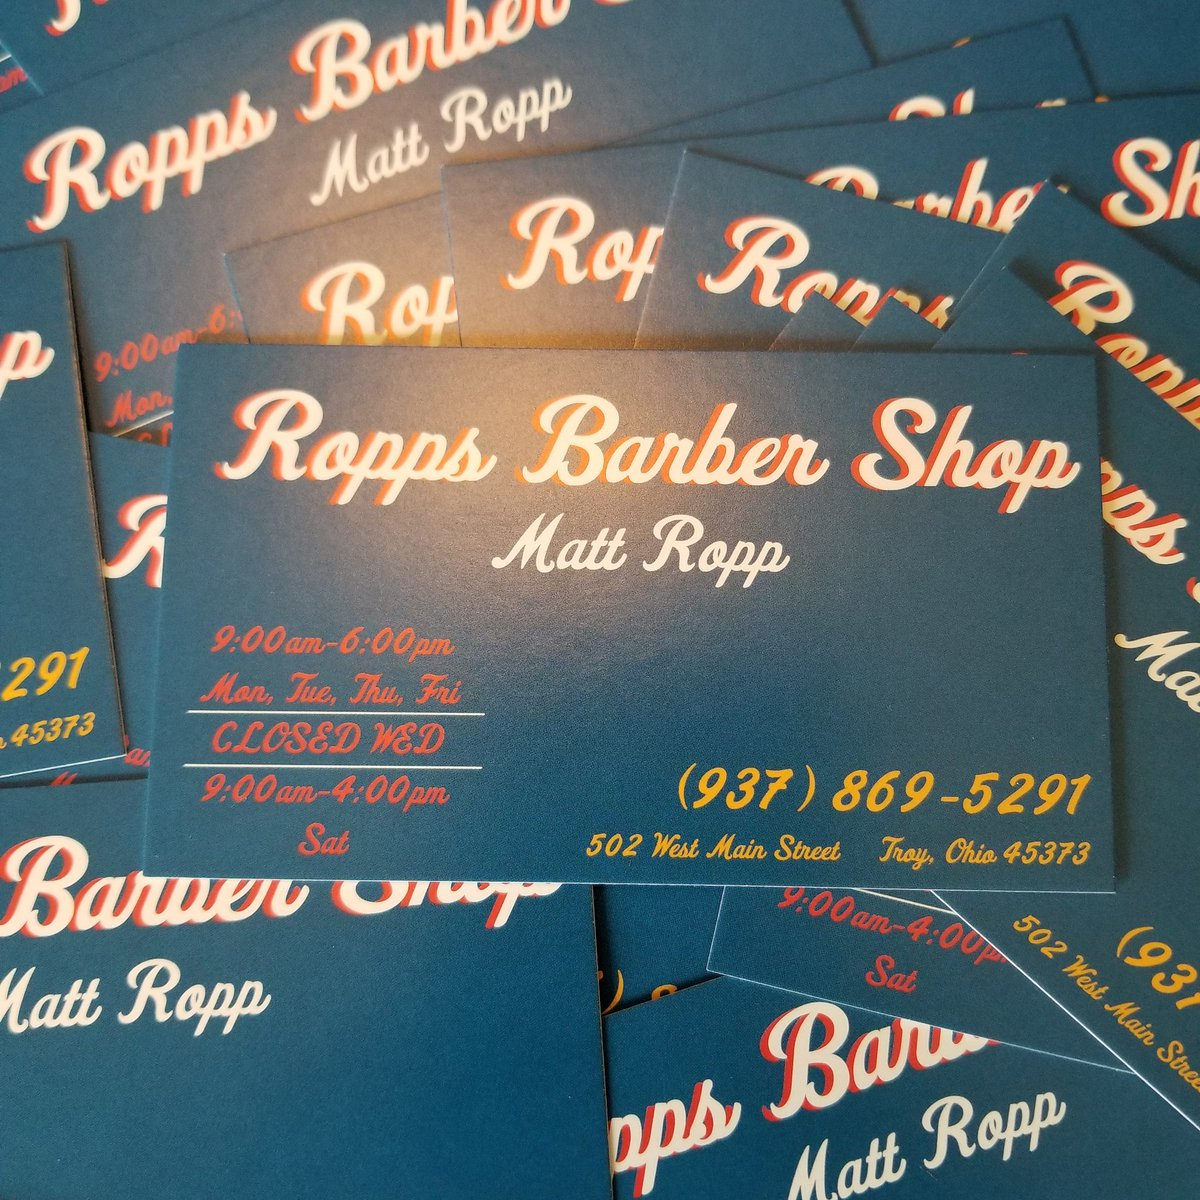 Ropps Barber Shop On Twitter Come Get A Haircut Calltxt To